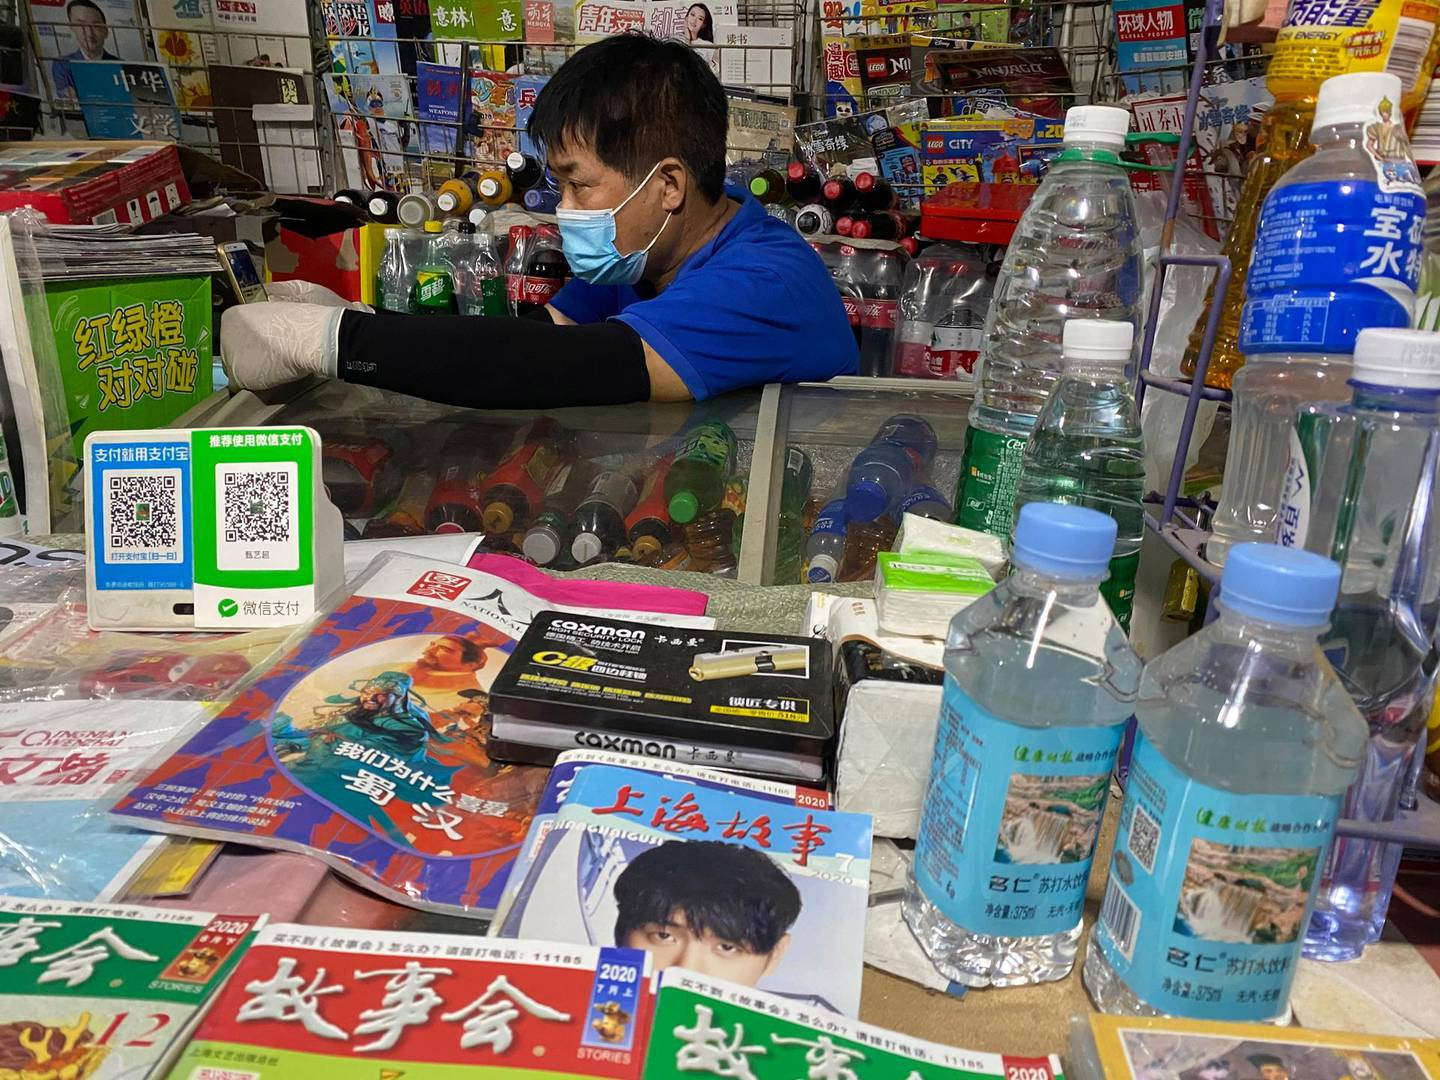 A news-stand vendor, wearing a mask to protect against the coronavirus, sits near QR codes for Alipay and WeChat, two popular online payment system in Beijing, China on Tuesday, July 21, 2020. Ant Group, the financial technology arm of e-commerce giant Alibaba Group, on Tuesday, Aug. 25, 2020, filed for a dual-listing in Hong Kong and Shanghai, in what would likely be the world's largest initial public stock offering since the coronavirus pandemic began. (AP Photo/Ng Han Guan, File)